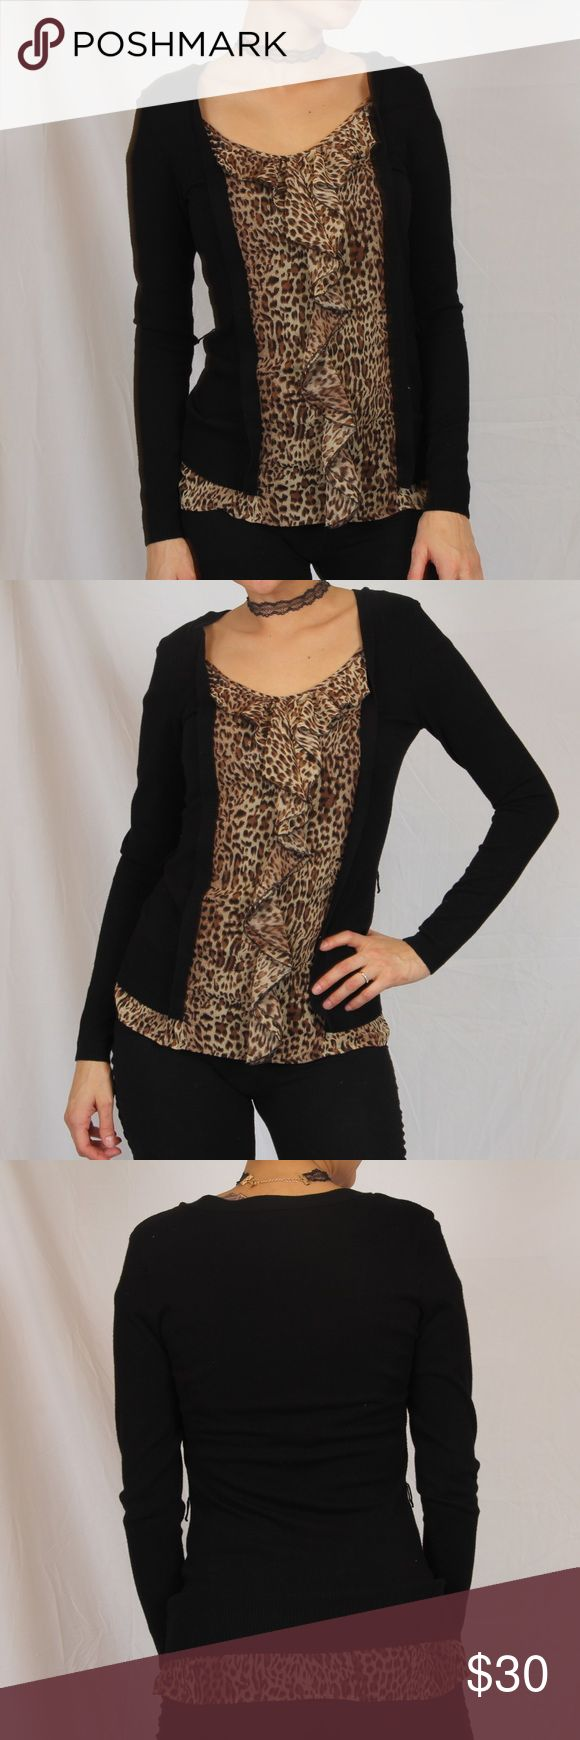 Women's blouse small INC International concepts Body 20% rayon 20% nylon Trim 100% polyester Made in China The blouse is black and longsleeved in front there is a leopard print with ruffles INC International Concepts Tops Blouses